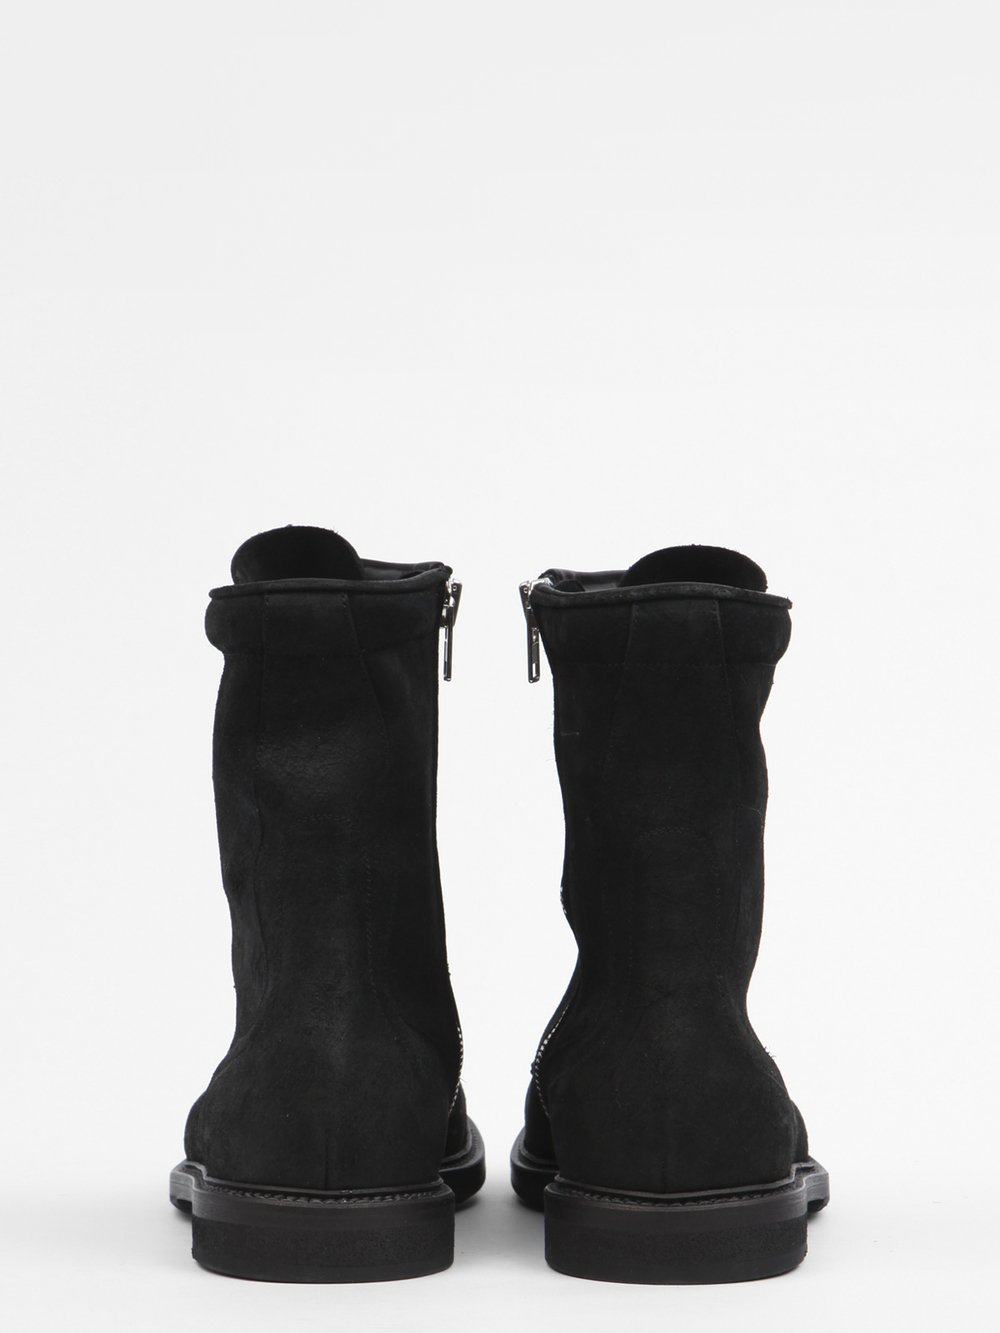 RICK OWENS - ARMY BOOTS